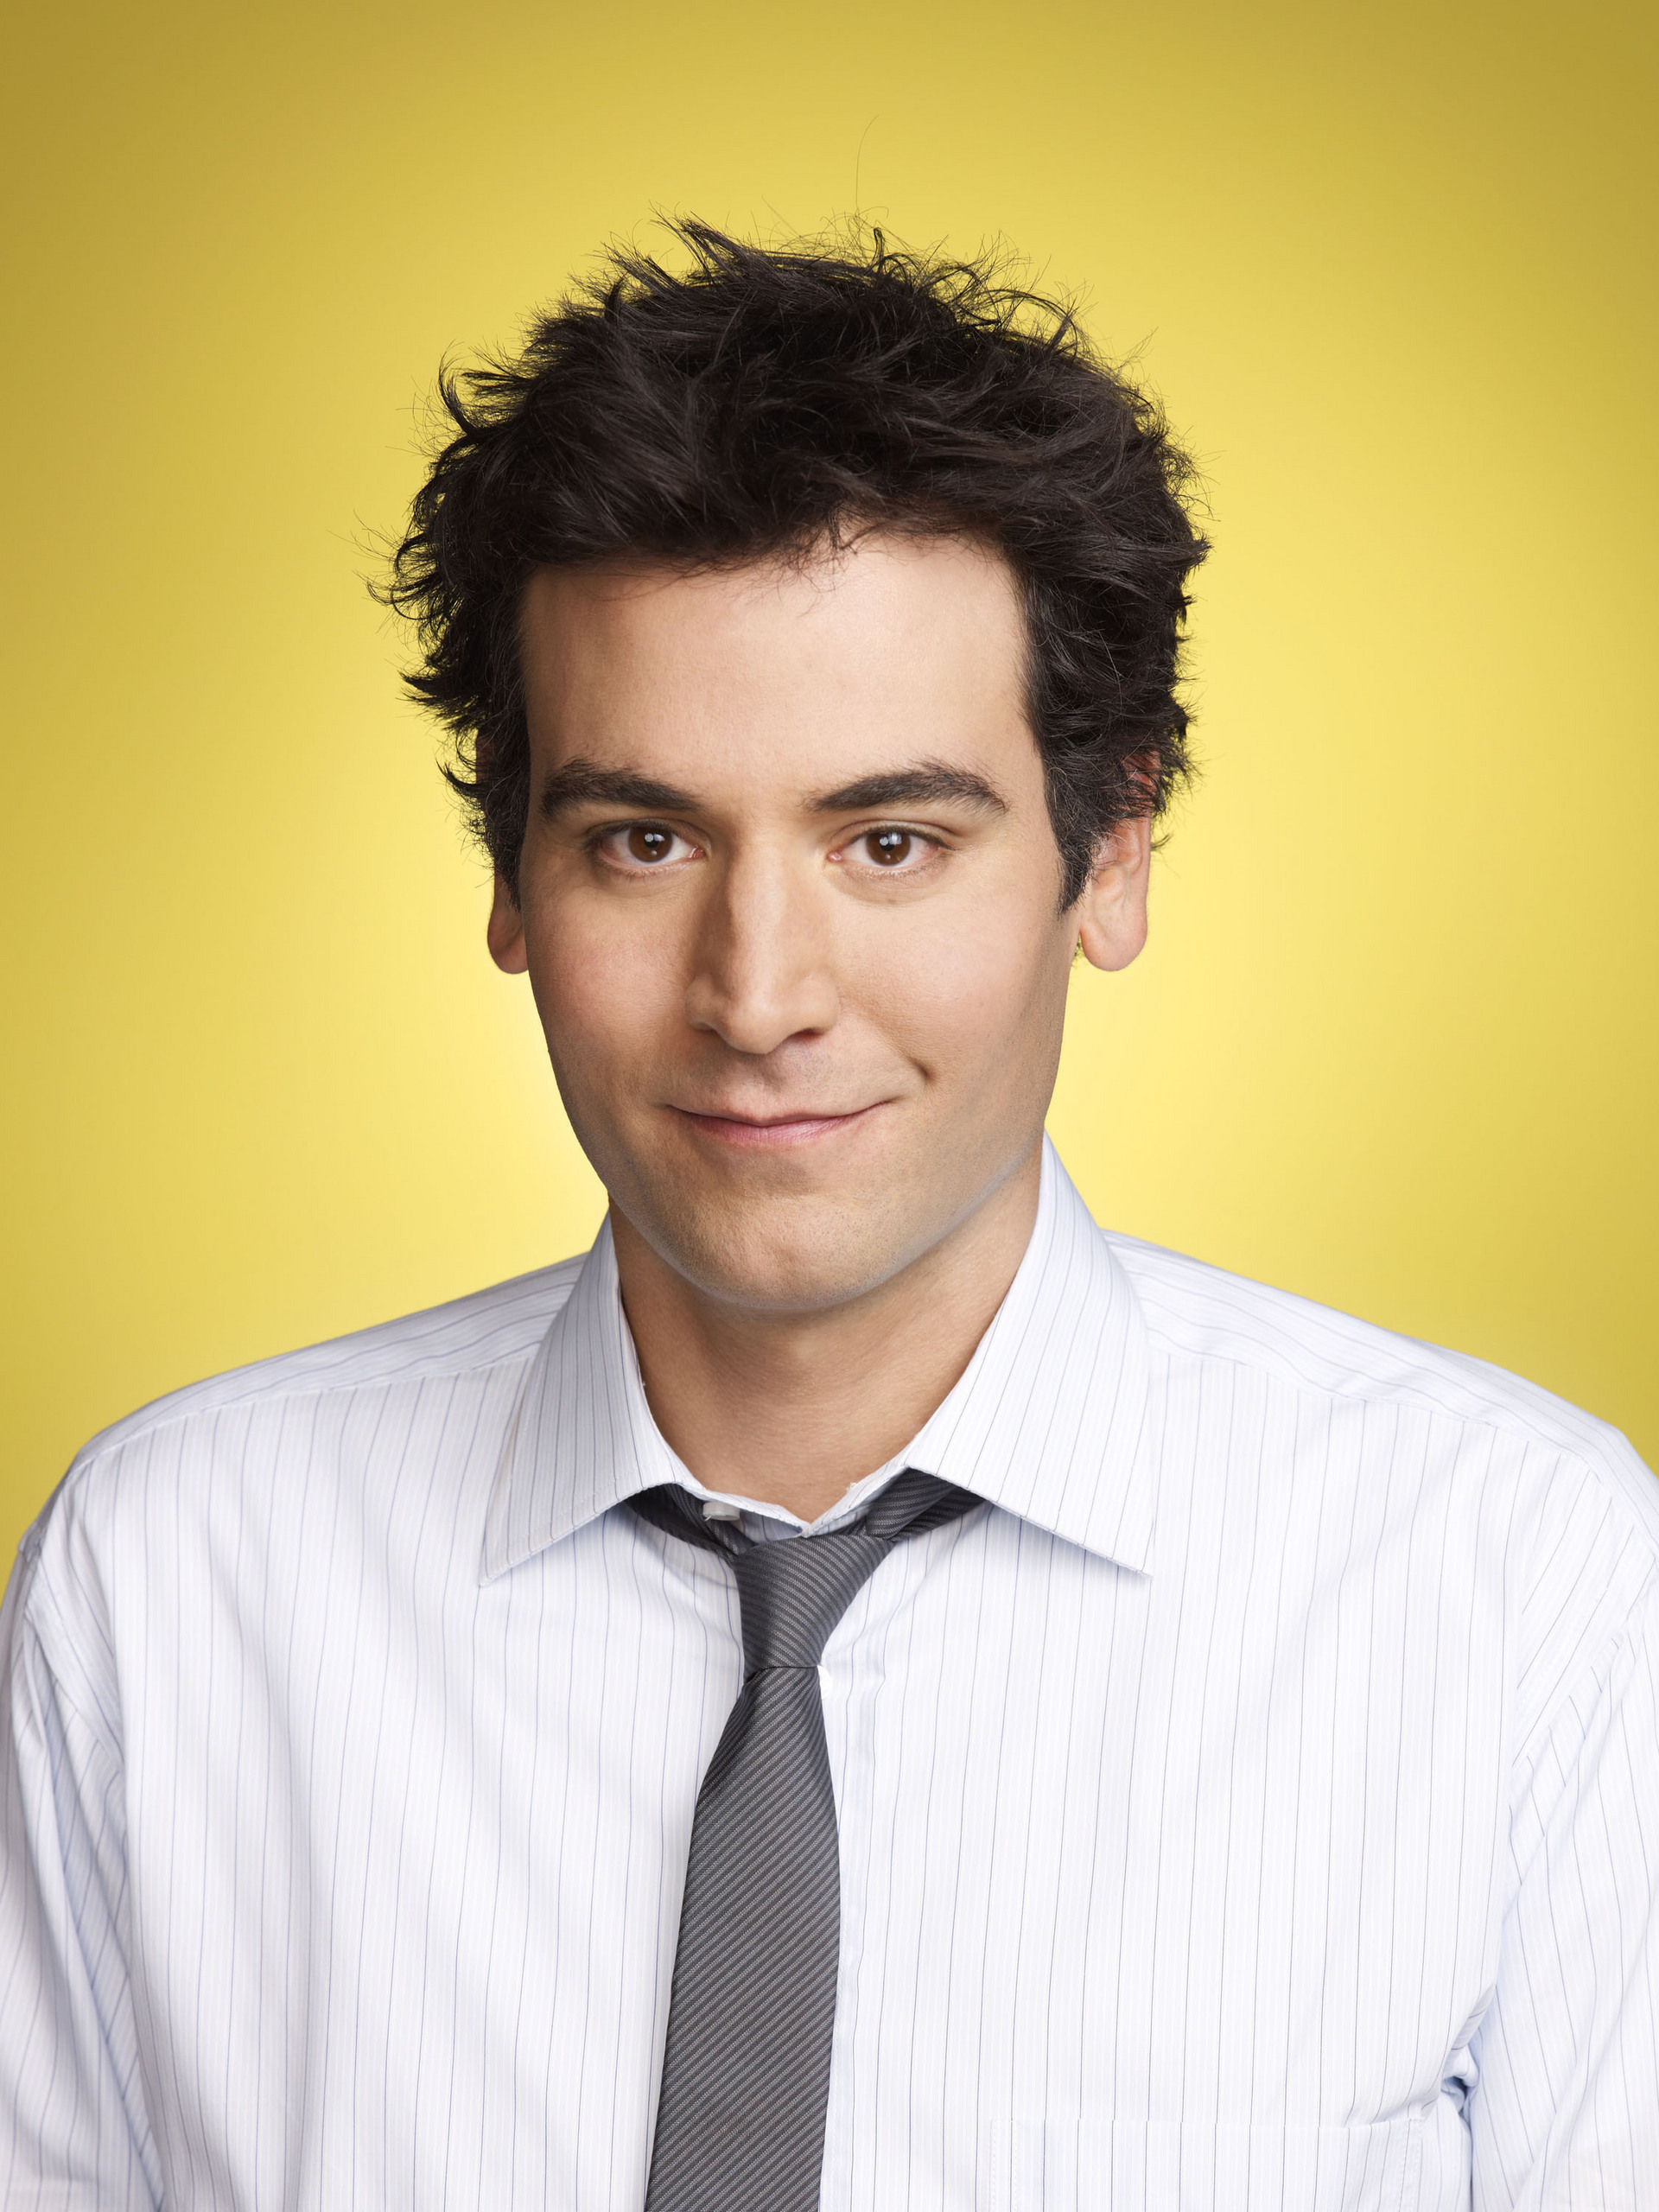 Personality ... MBTI Enneagram Ted Mosby ( How I Met Your Mother ) ... loading picture